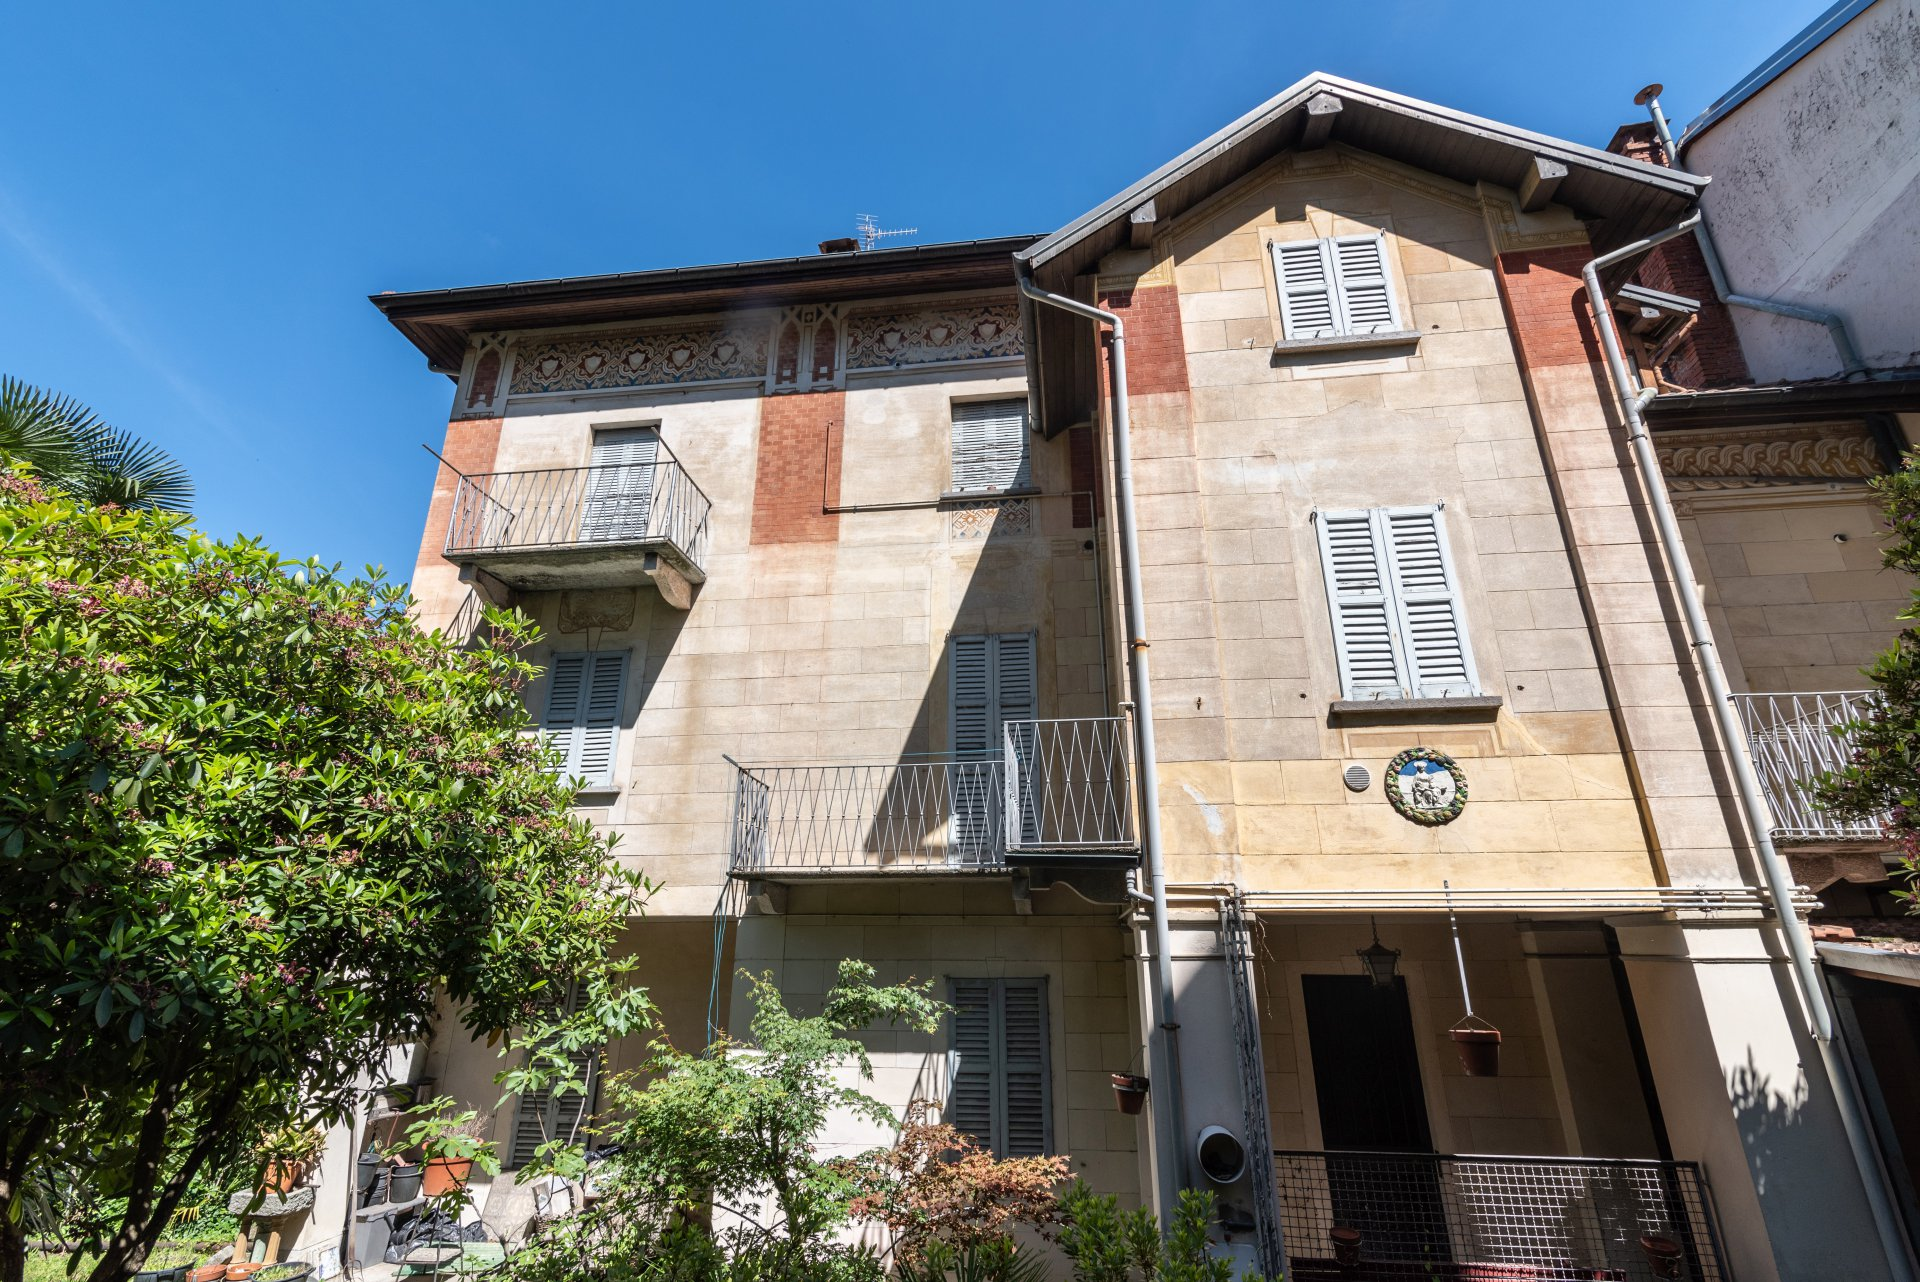 Property for sale in the centre of Stresa- facade